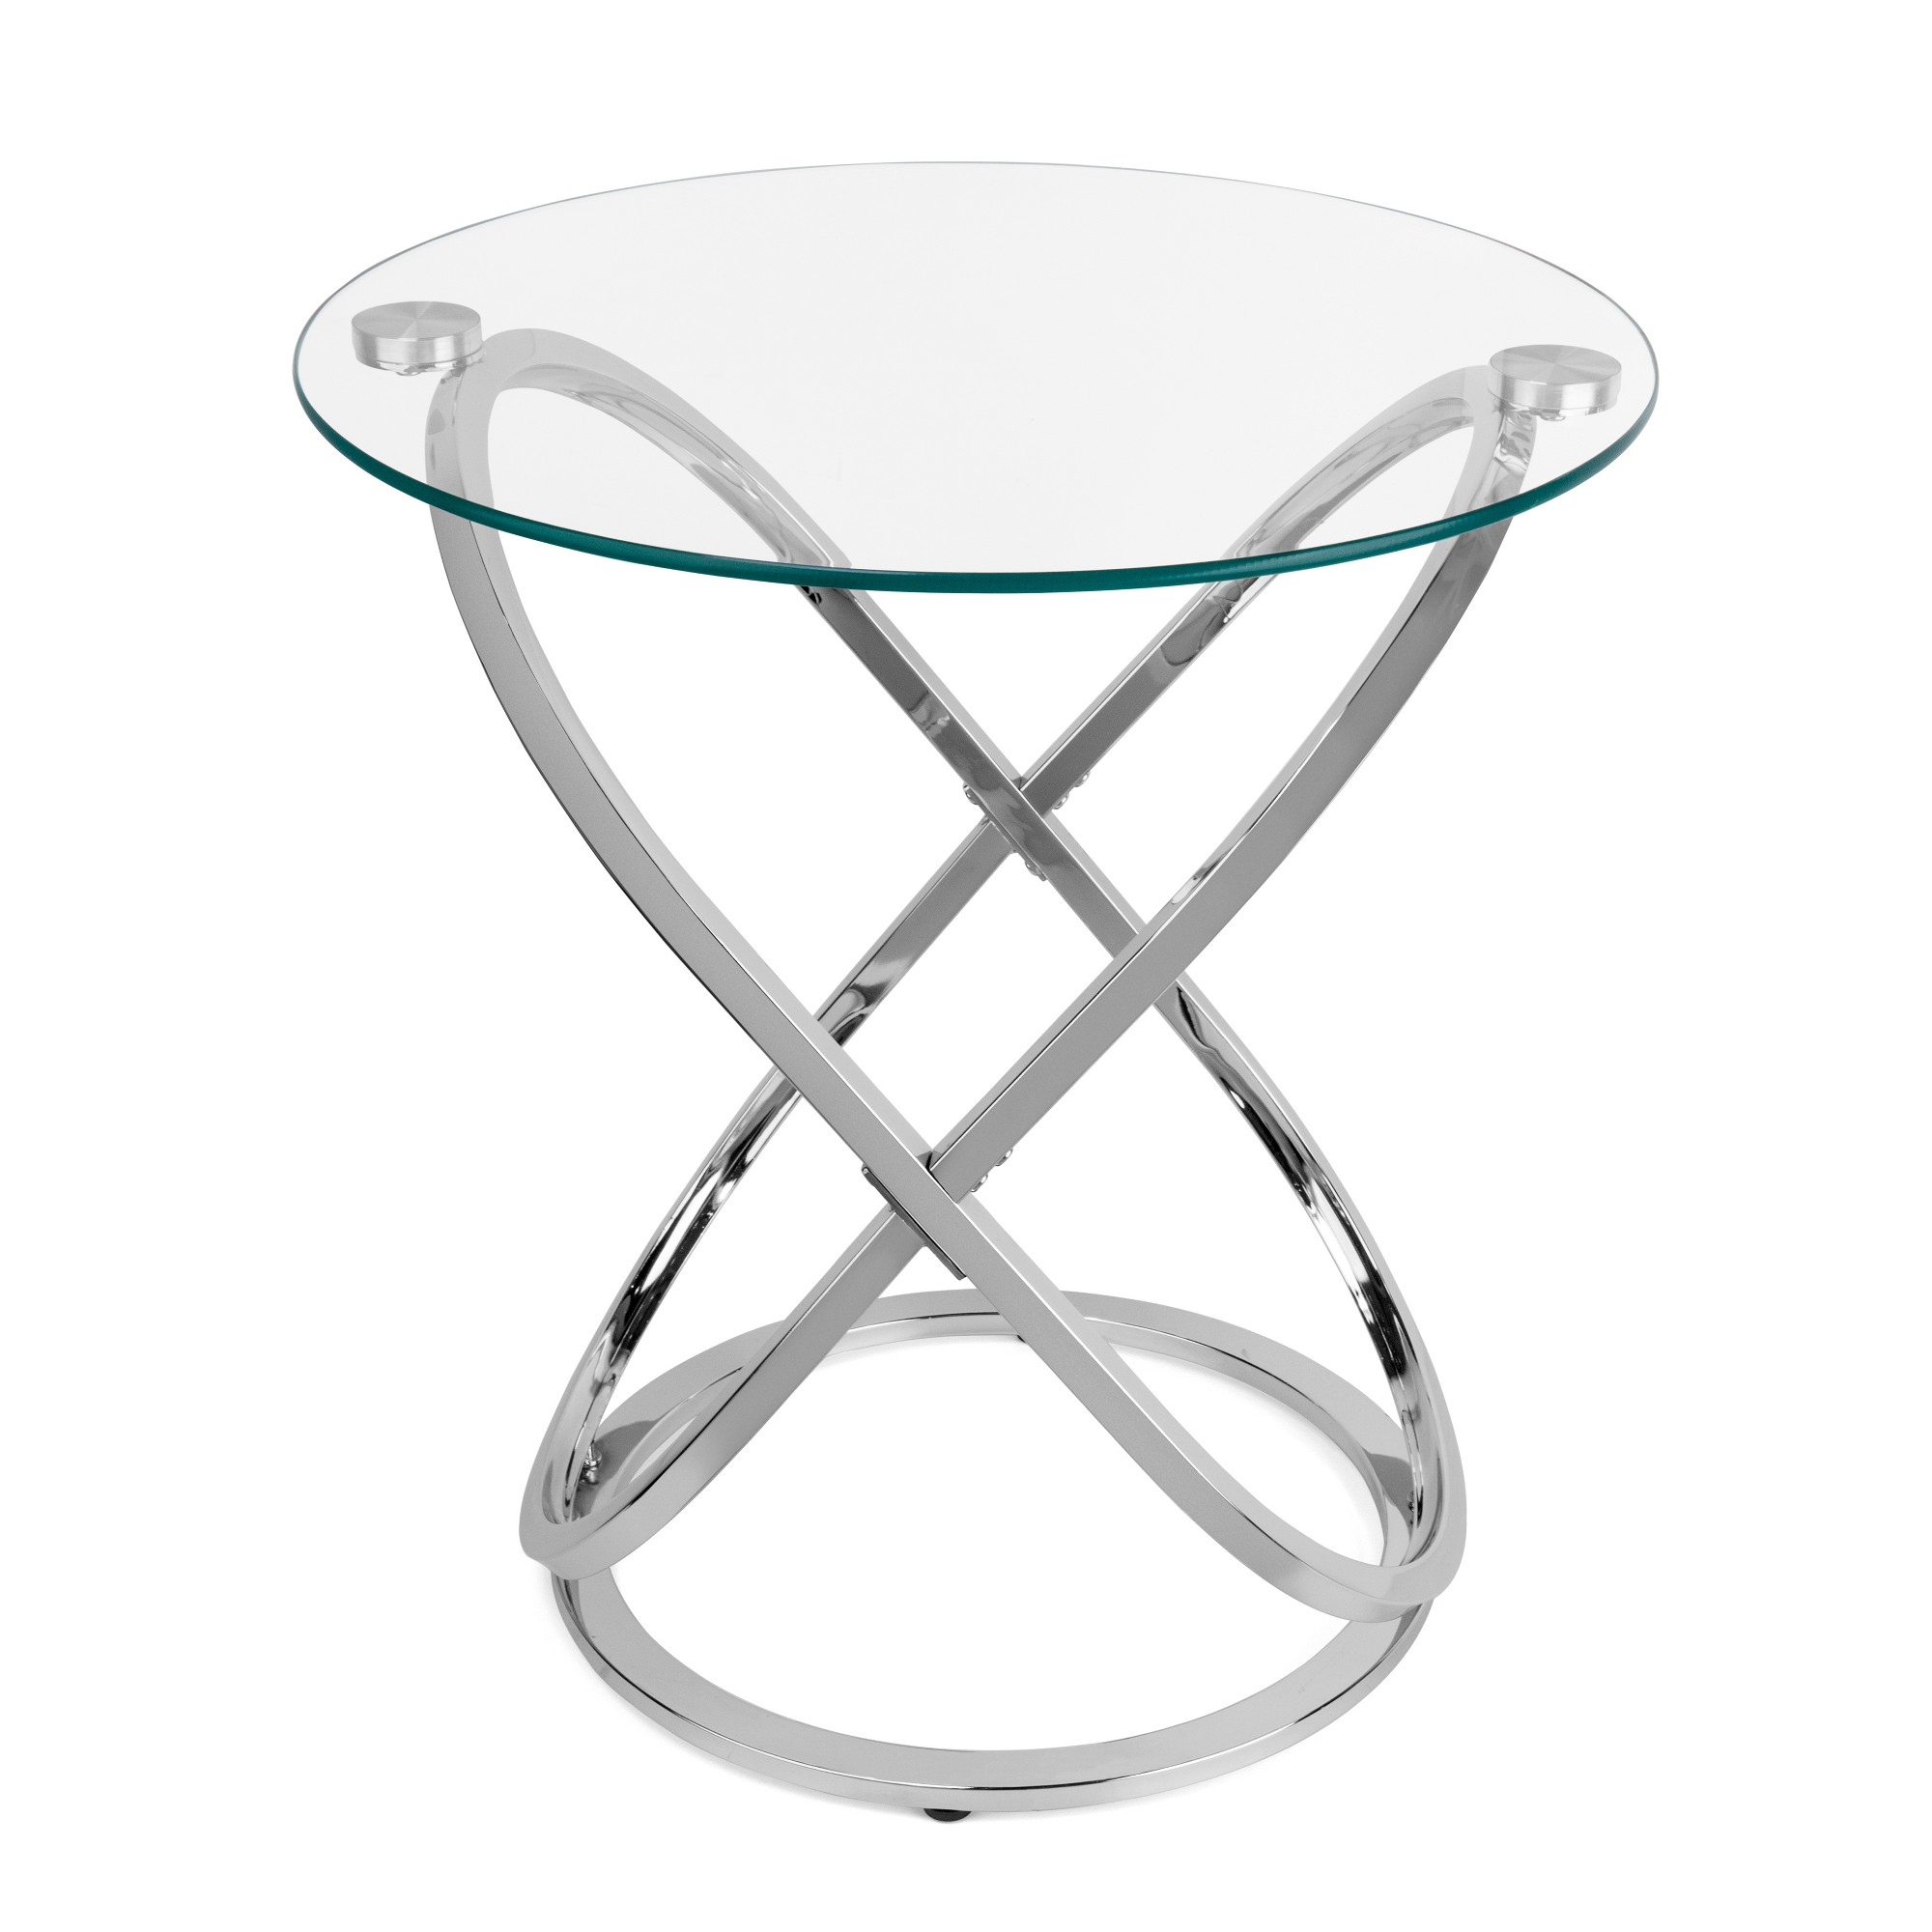 danya accent tables light chrome grey products glass contemporary trestle leg dining table round mirror target entry wicker rattan end black with lamp attached long console behind